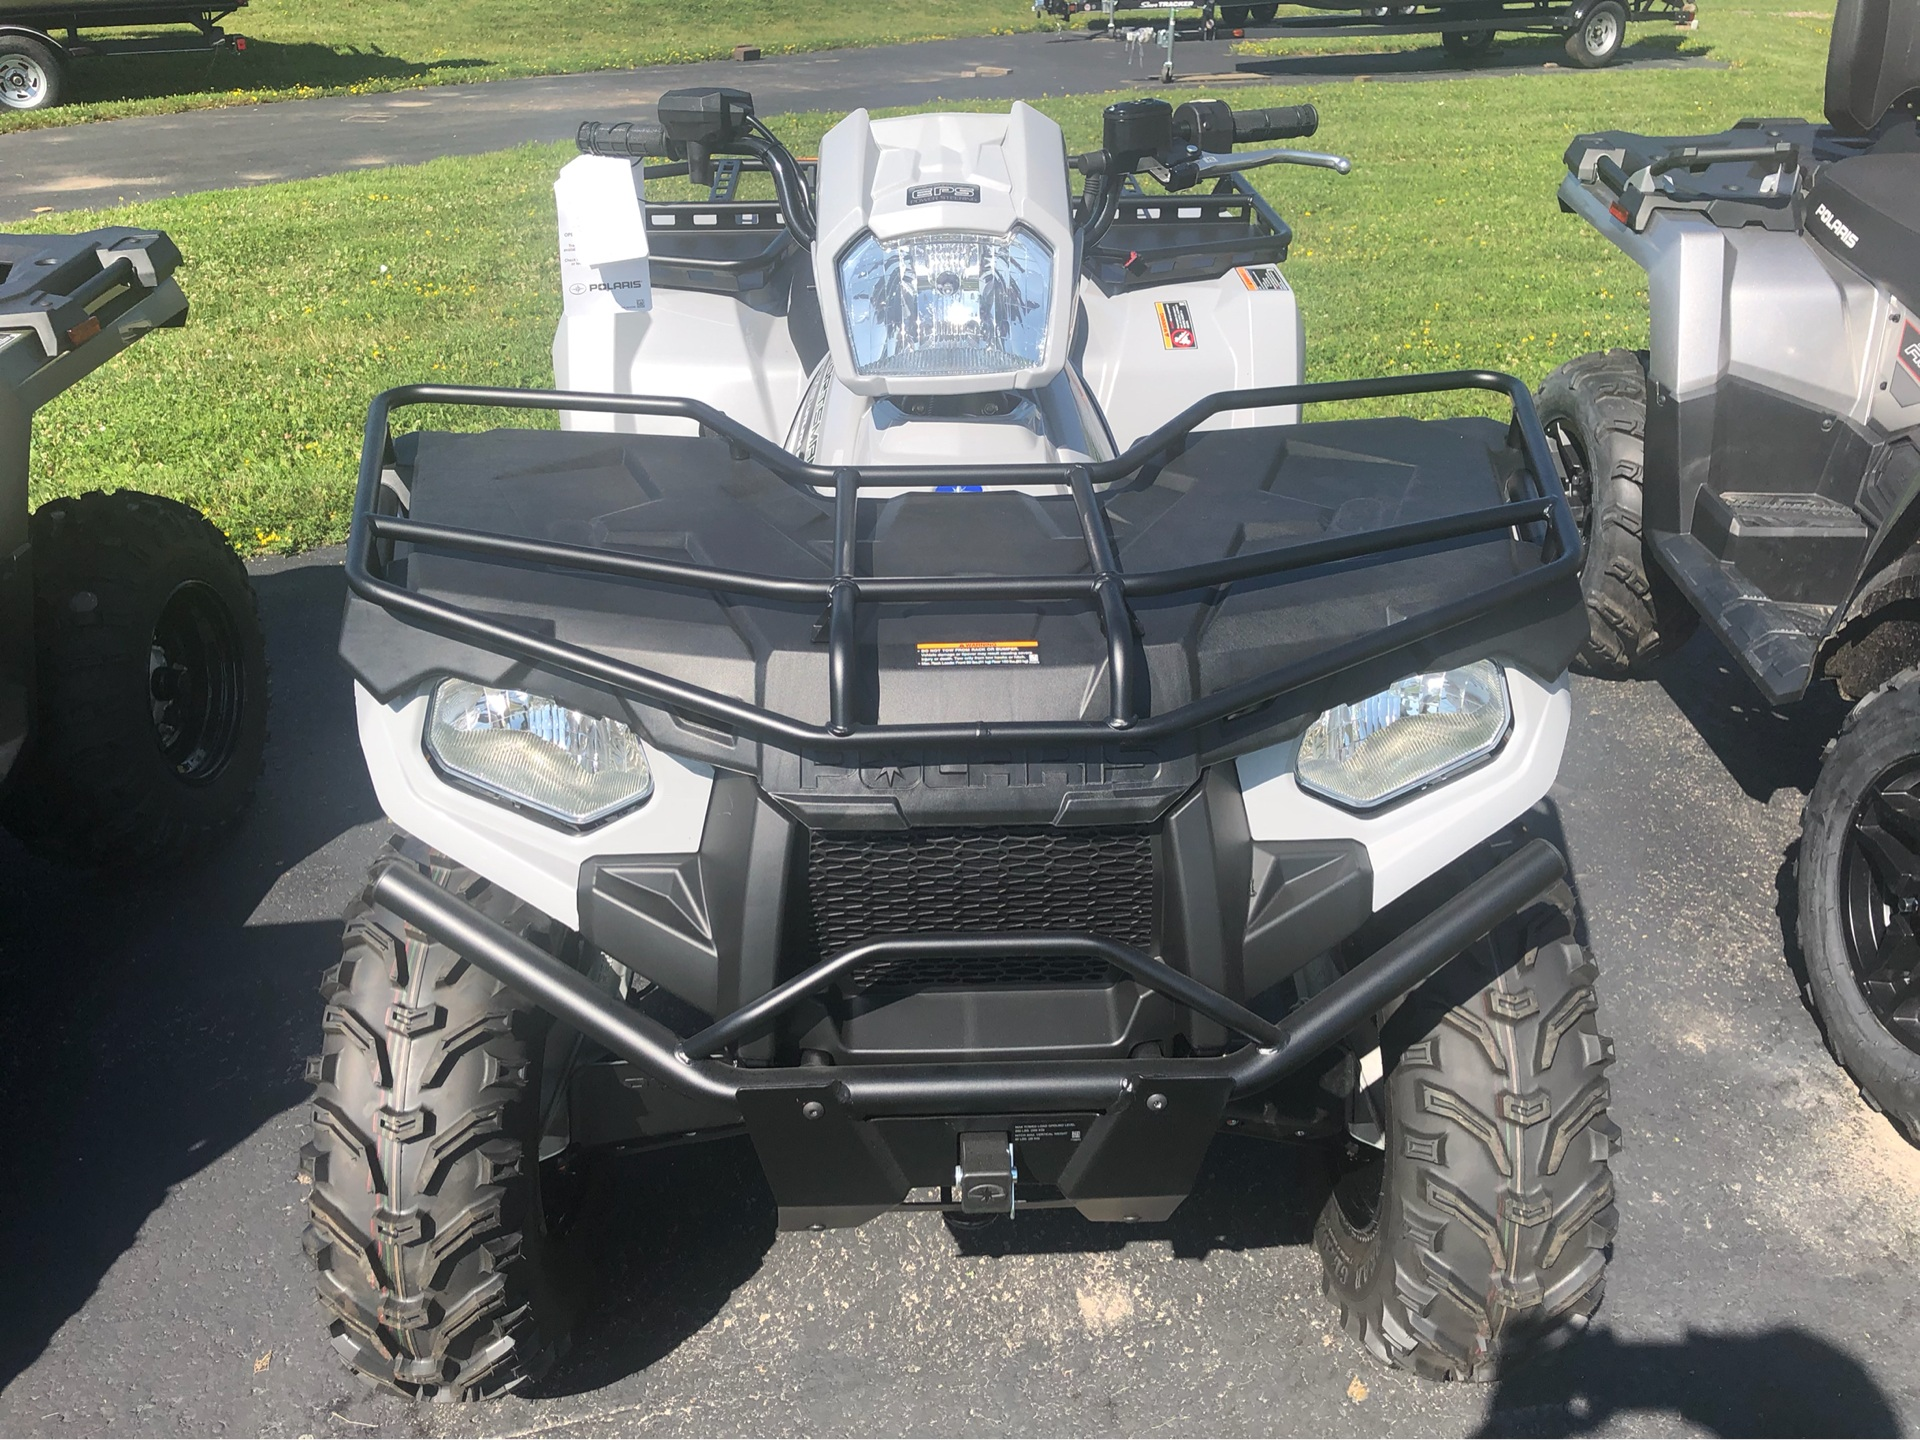 2019 Polaris Sportsman 570 EPS Utility Edition in Appleton, Wisconsin - Photo 2